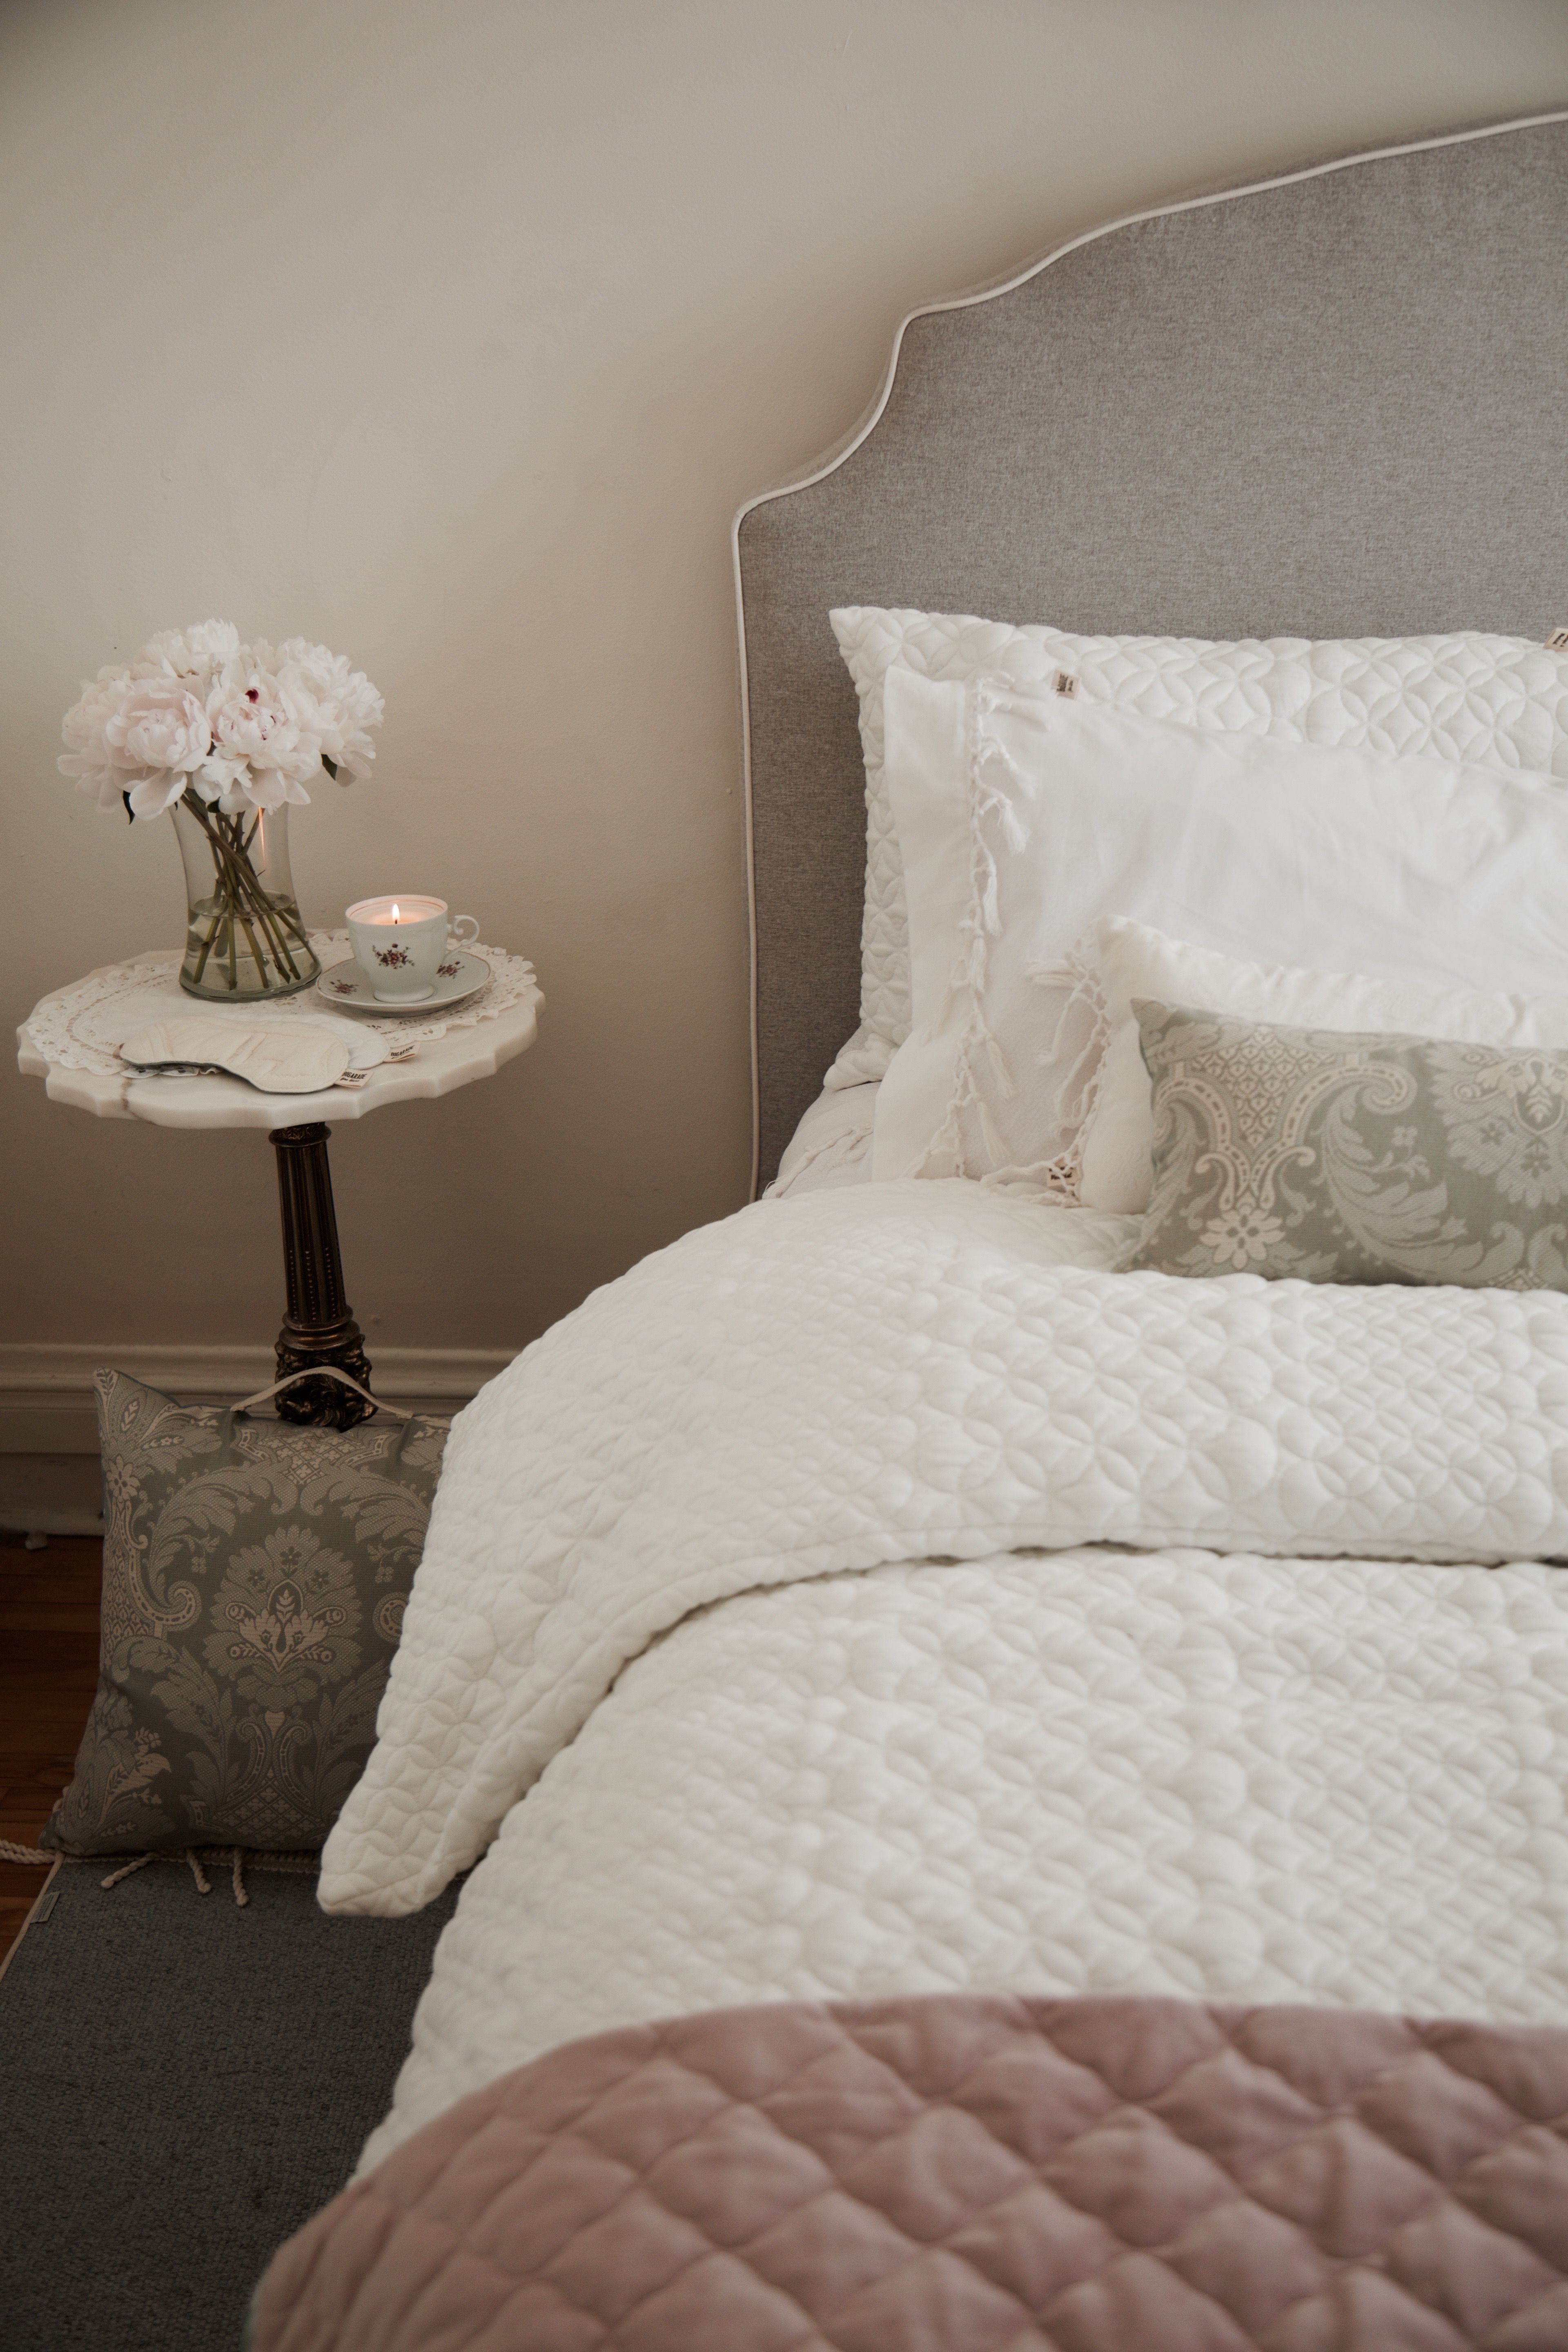 ideas for chic new bedroom design bedrooms fabulous decoration livingroom your shabby remodell simple